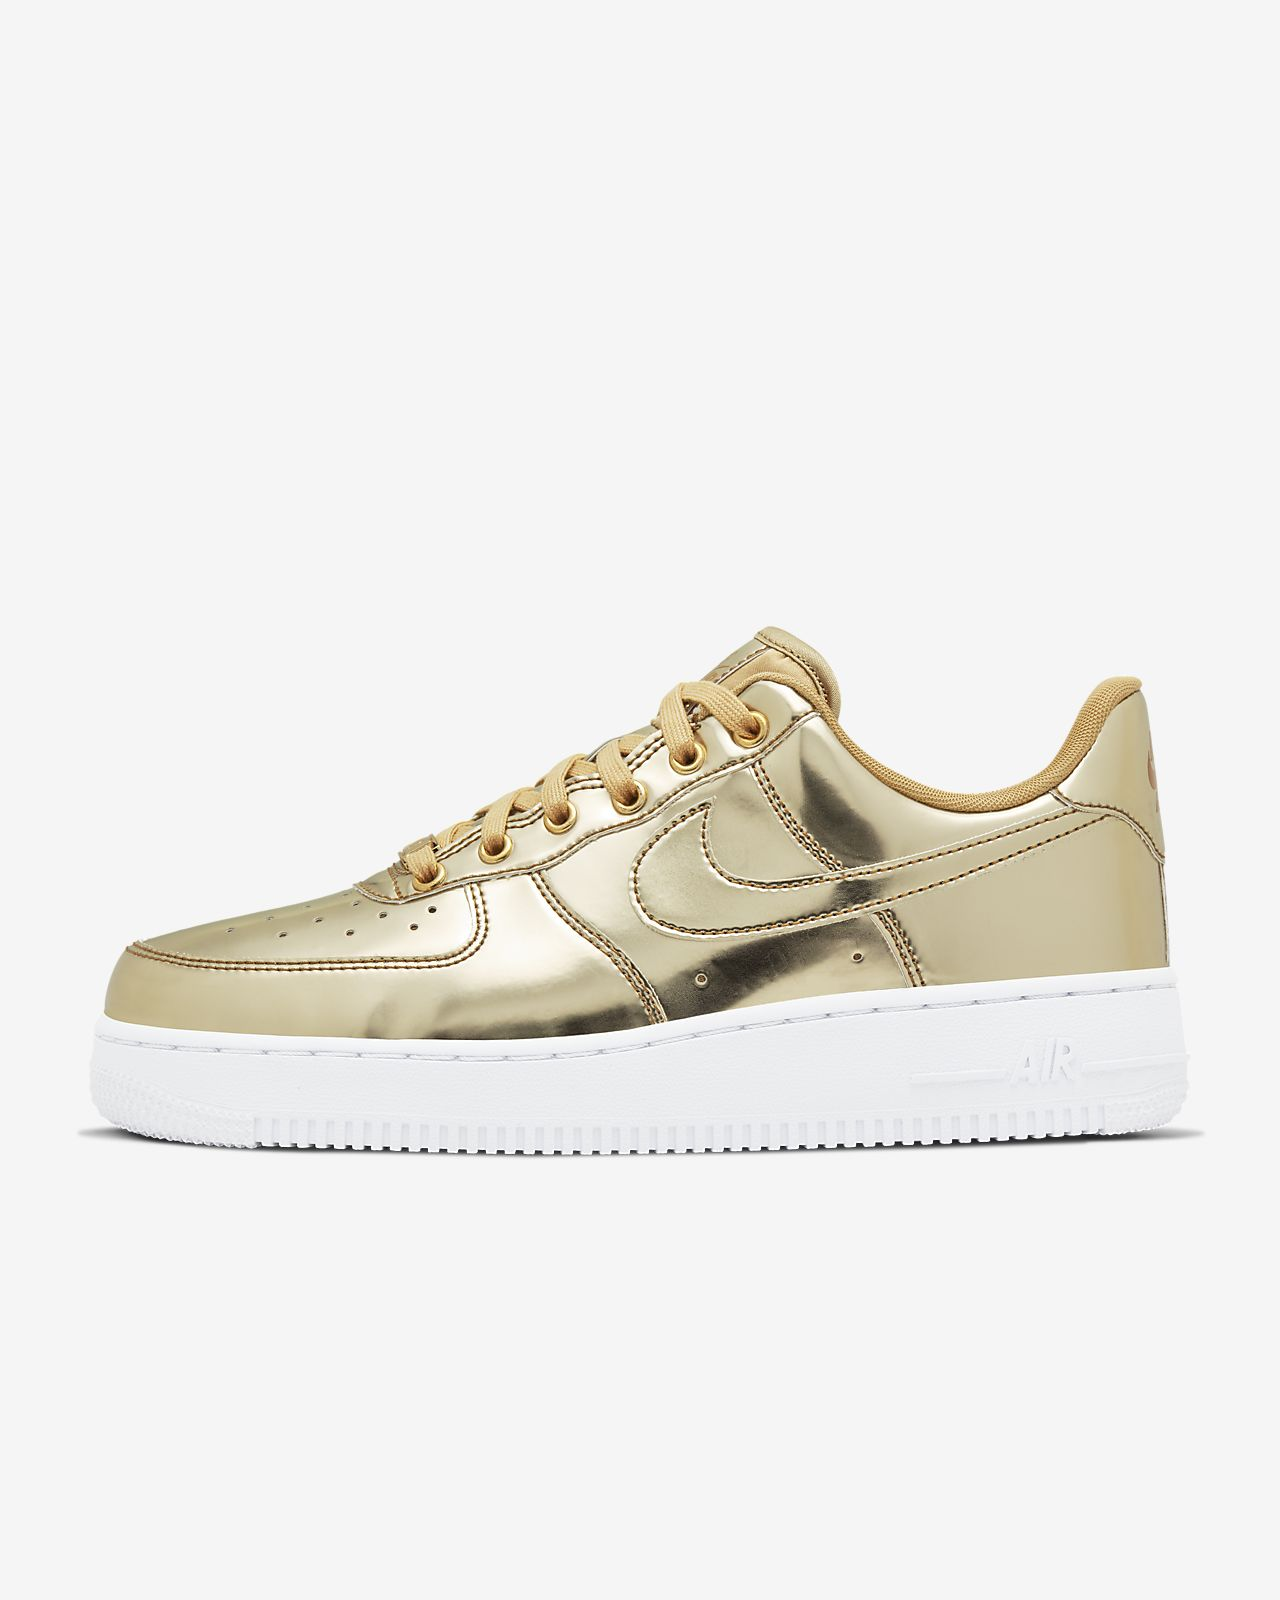 Chaussure Nike Air Force 1 SP pour Femme